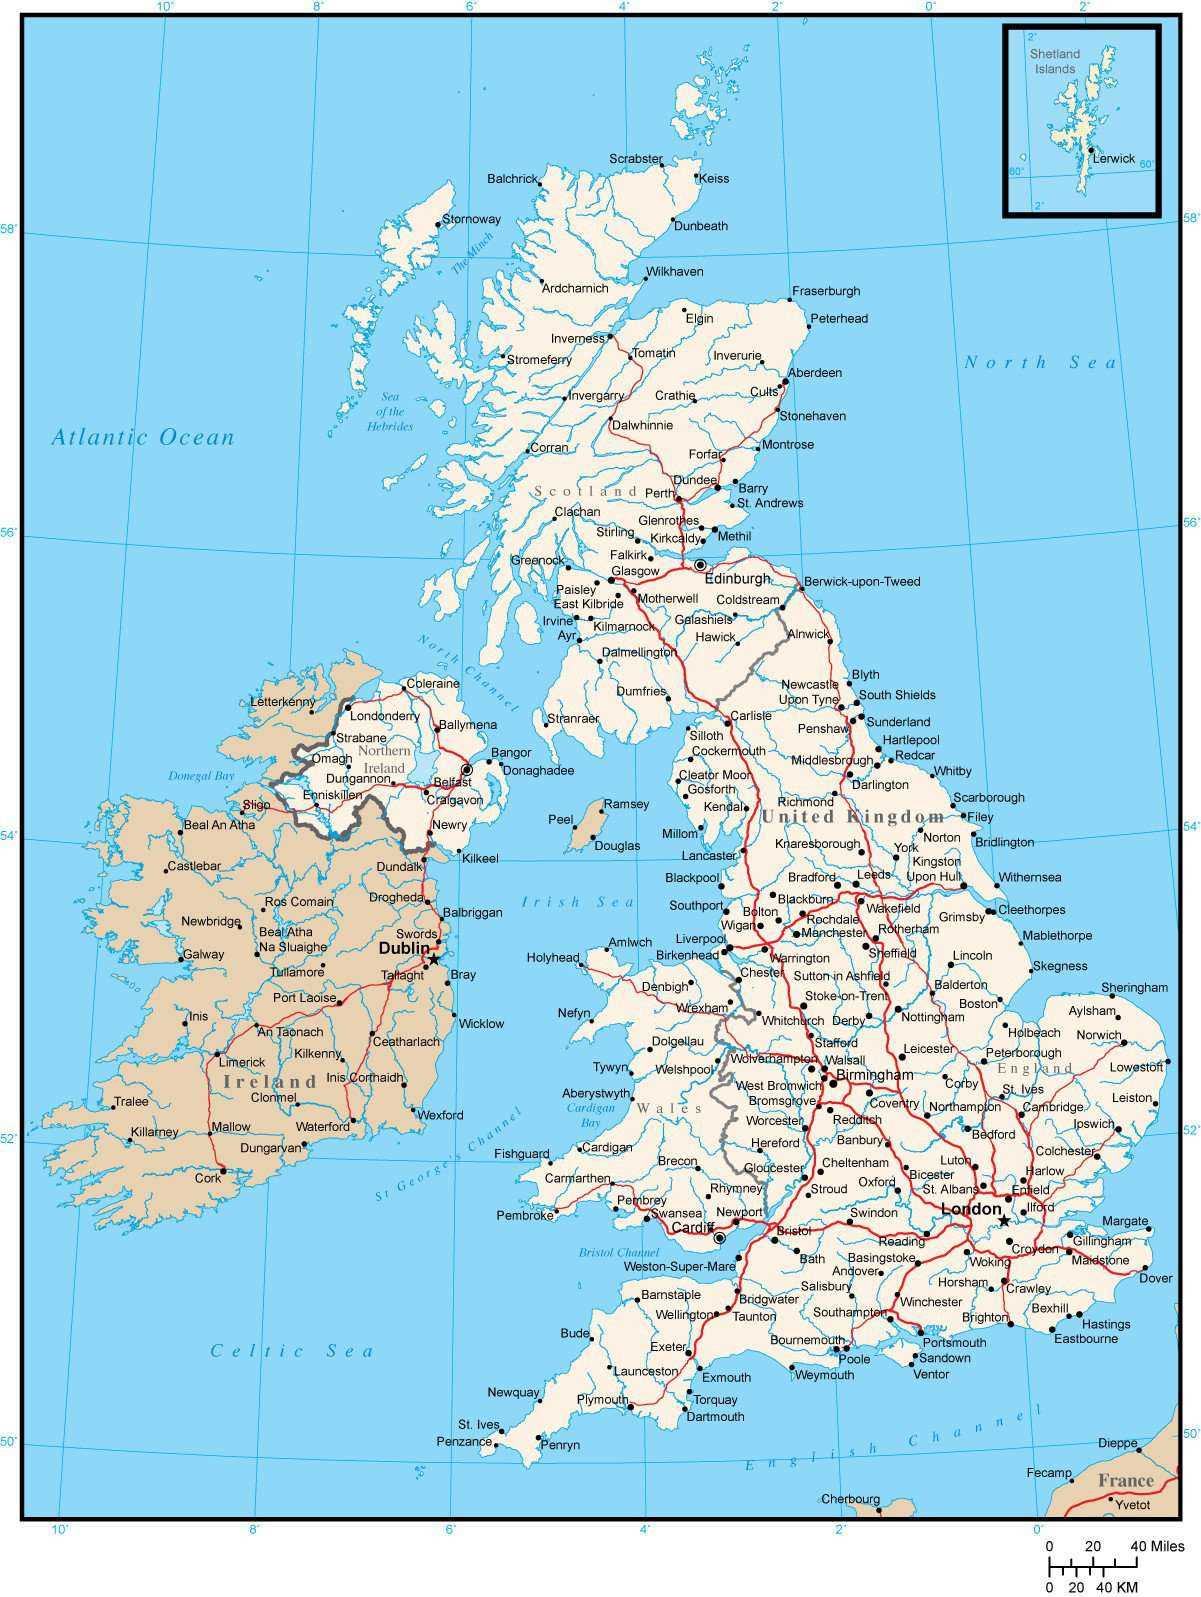 Map Of England Showing Cities.British Islands Map With Major Roads And Cities